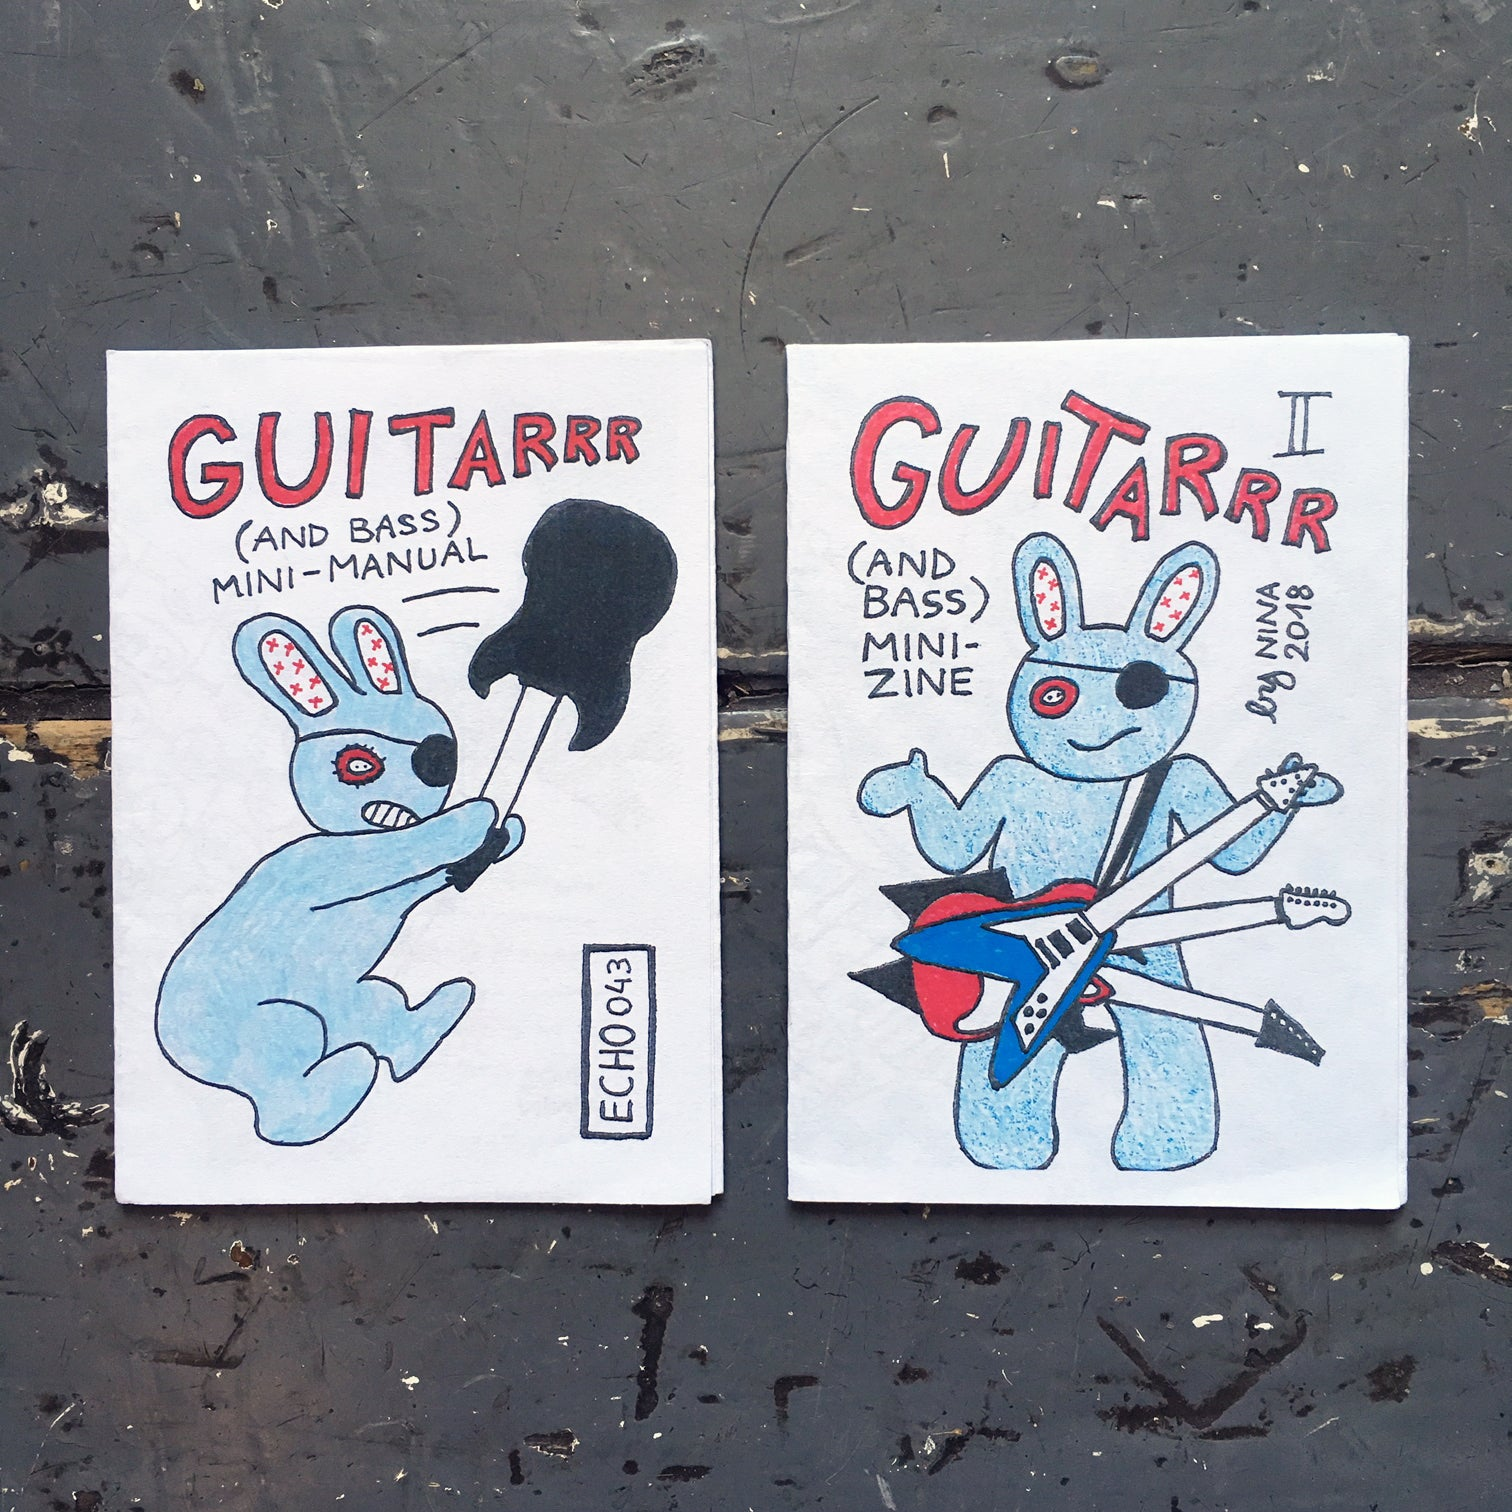 Guitarrrr (And Bass) Mini-Zines I & II - Zine